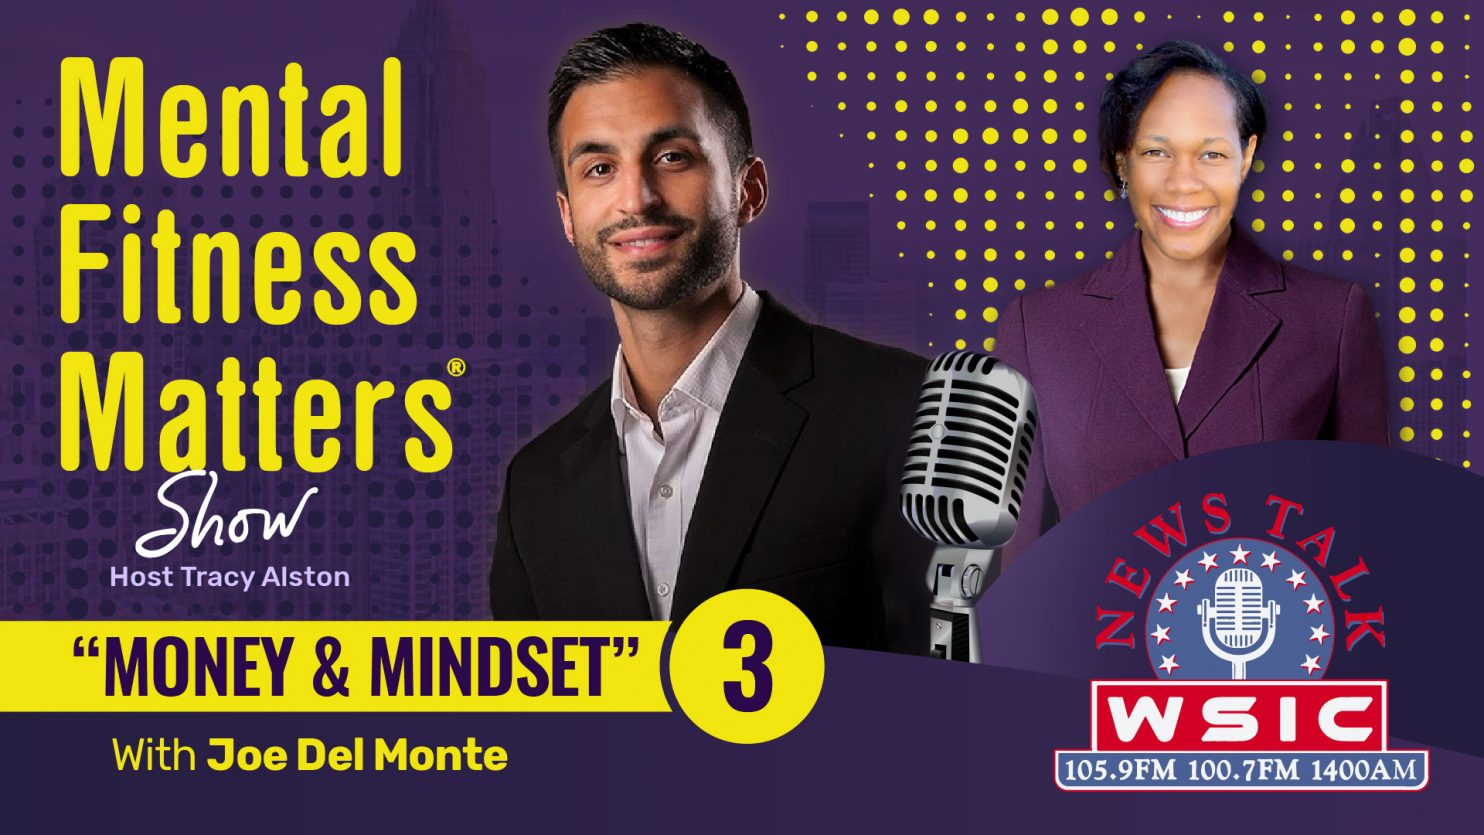 Money and Mindset with Joe del Monte